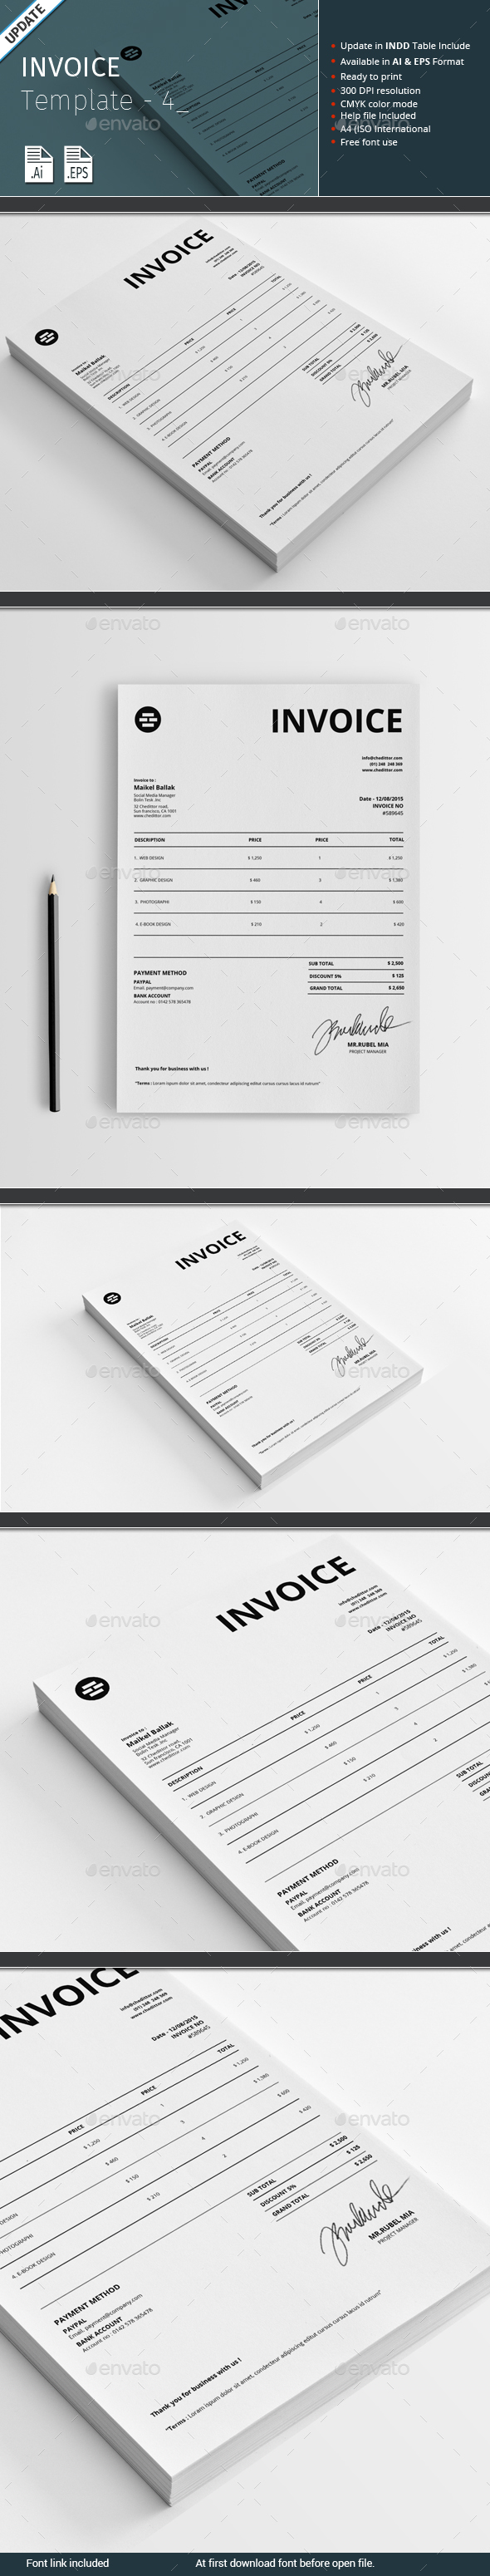 Invoice Template - 4 - Proposals & Invoices Stationery